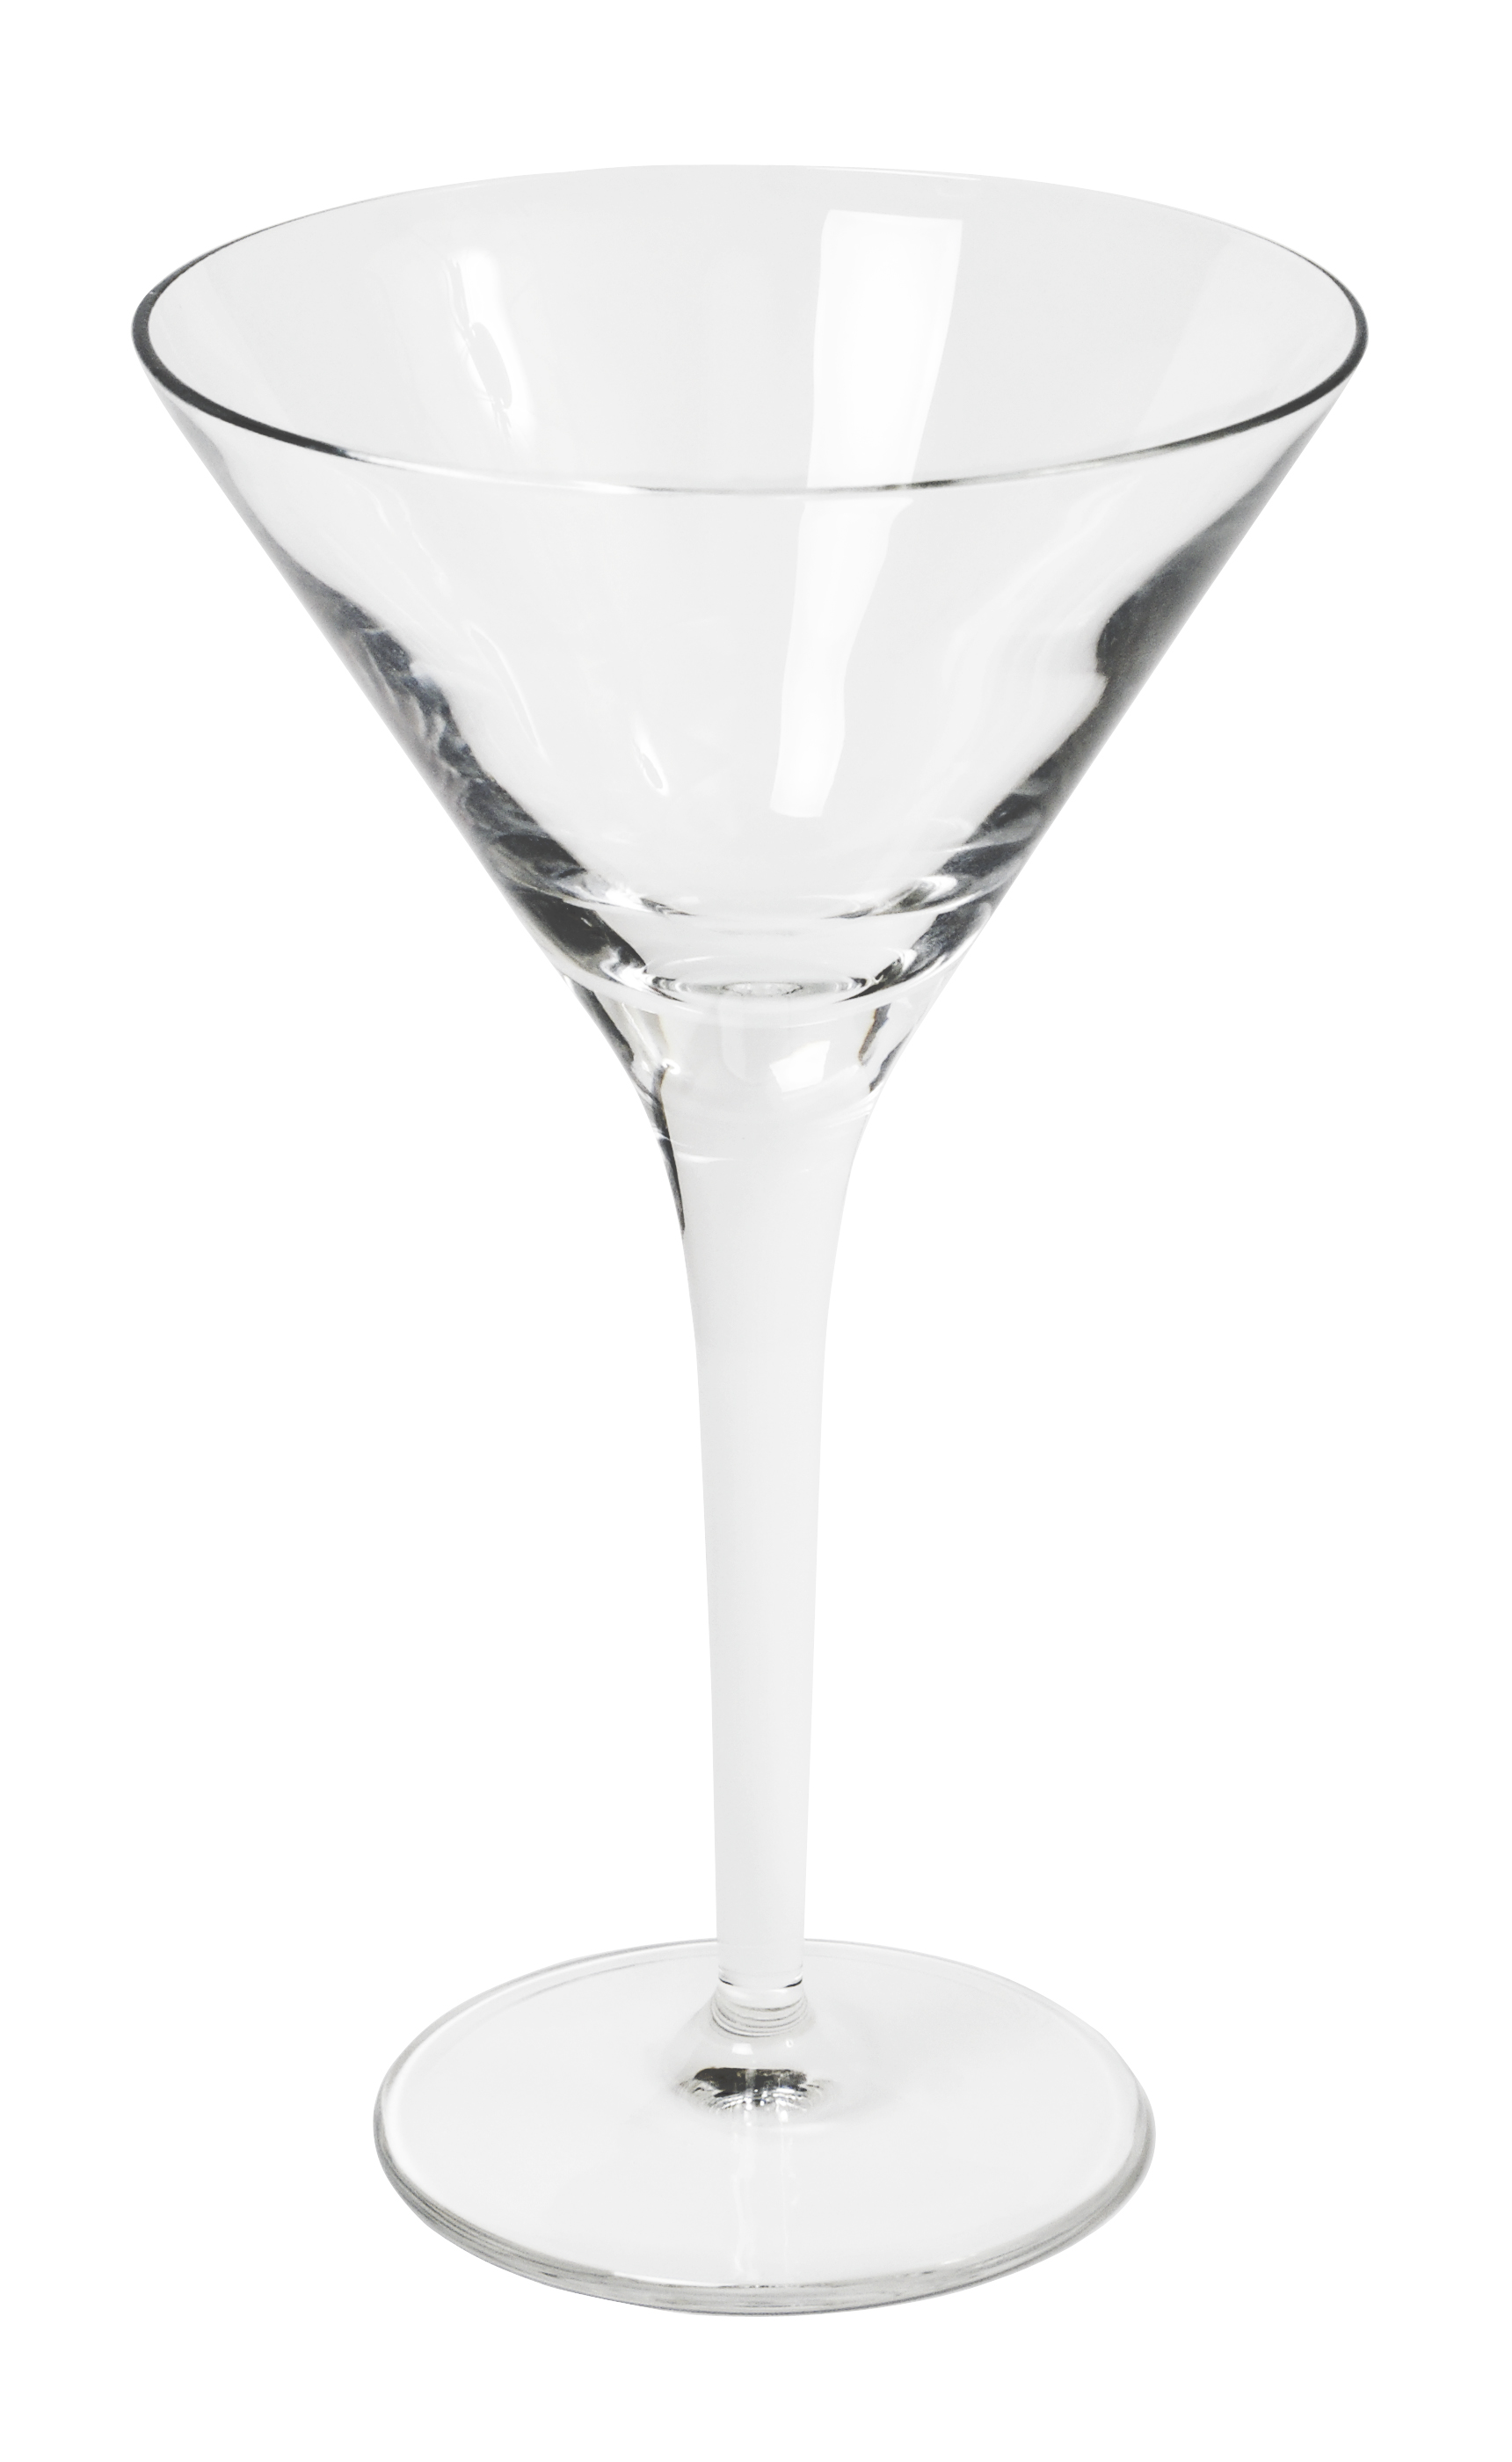 Cocktail glass wikipedia for Cocktail martini